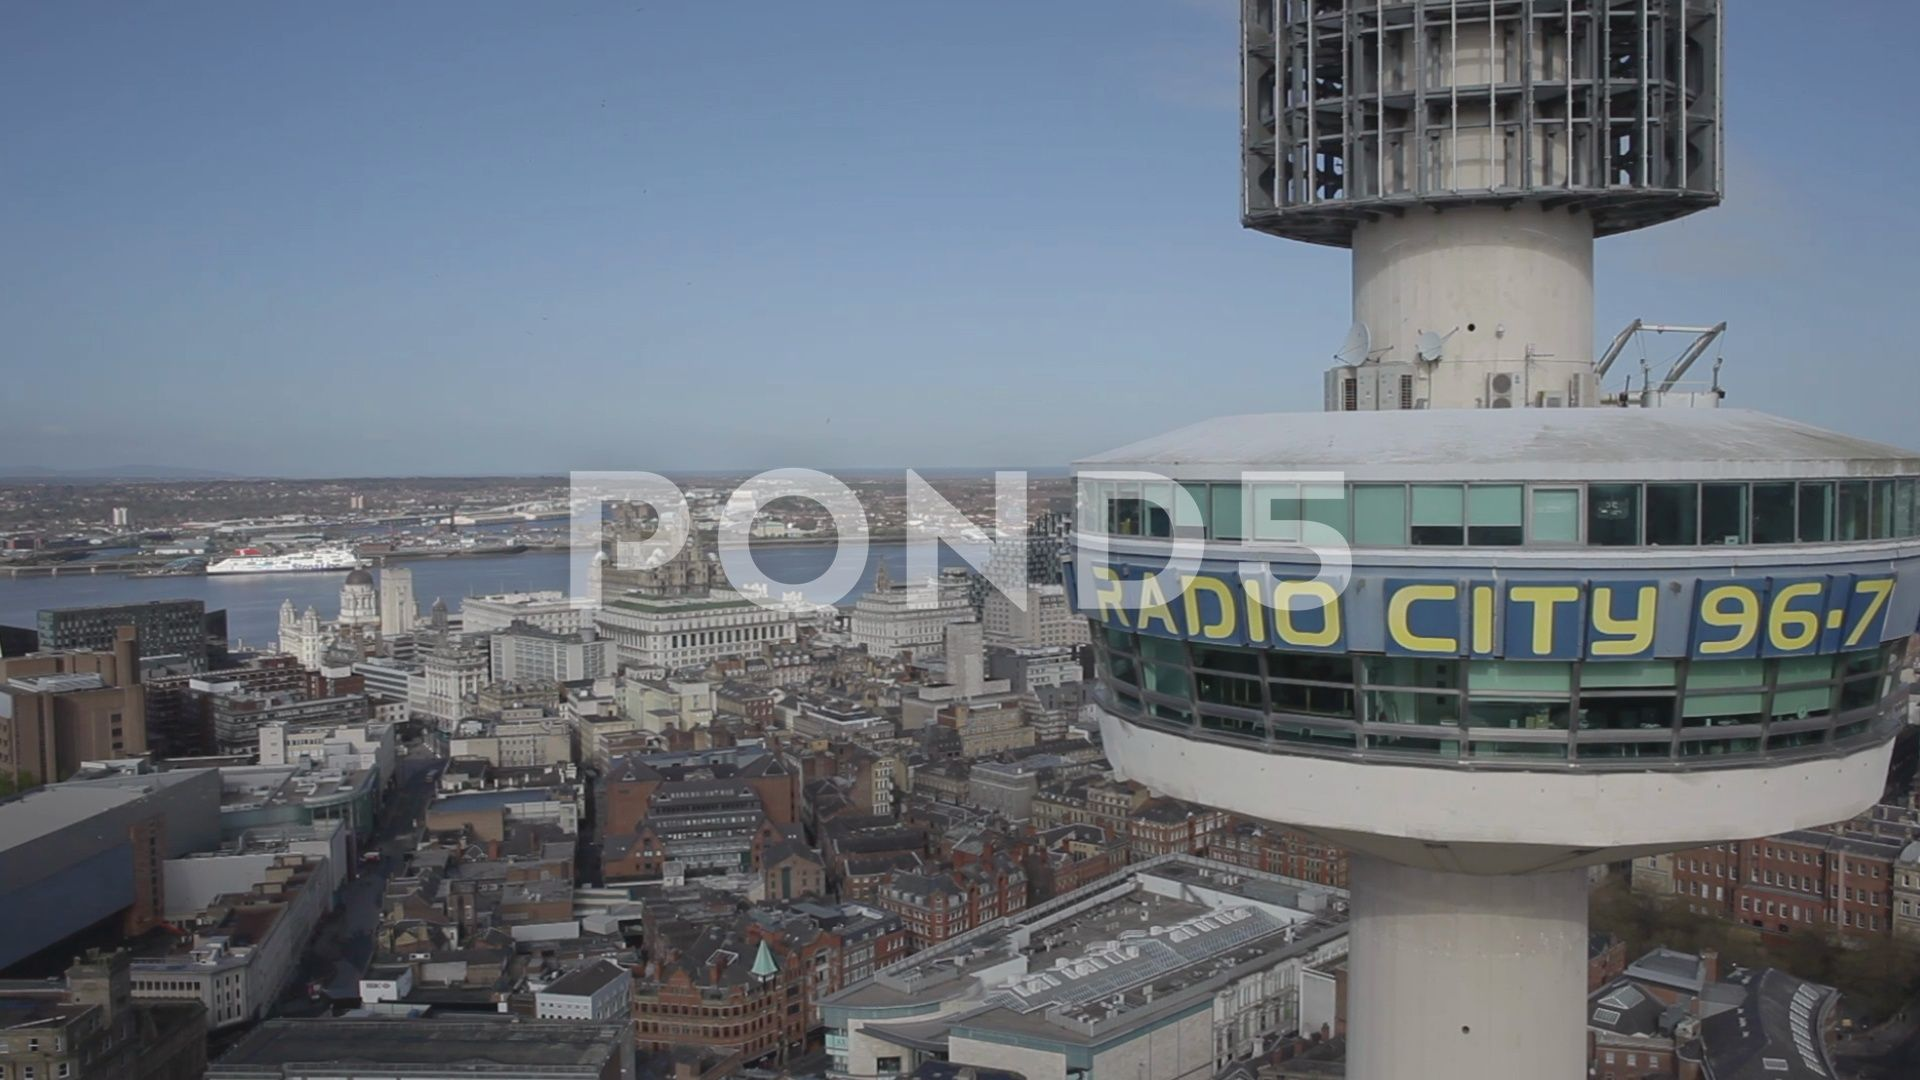 Liverpool City And Radio City Tower Aerial Flight Stock Footage Ad Radio Tower Liverpool City Liverpool City Radio City City